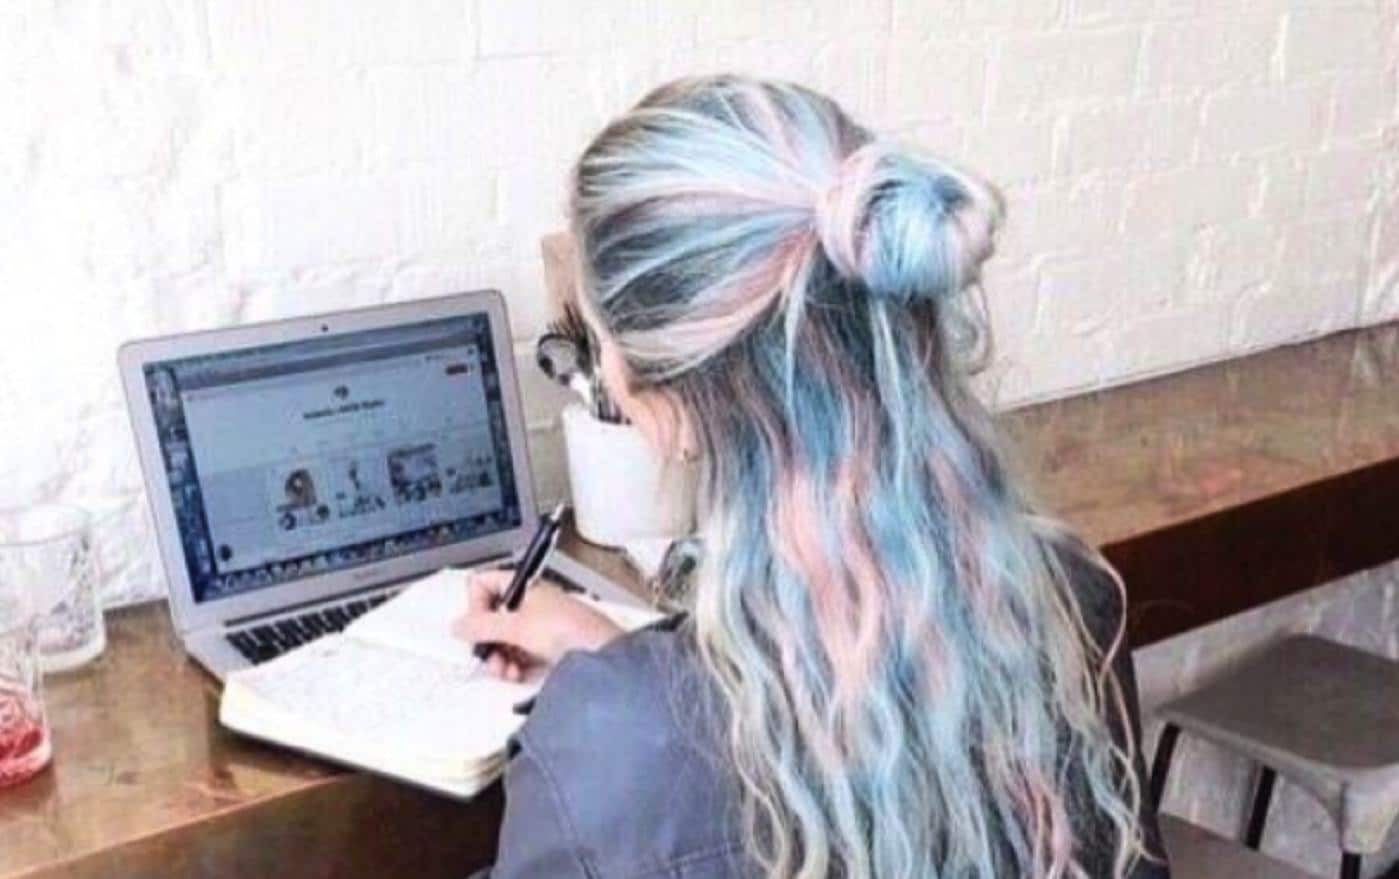 hairdresser in front of a laptop